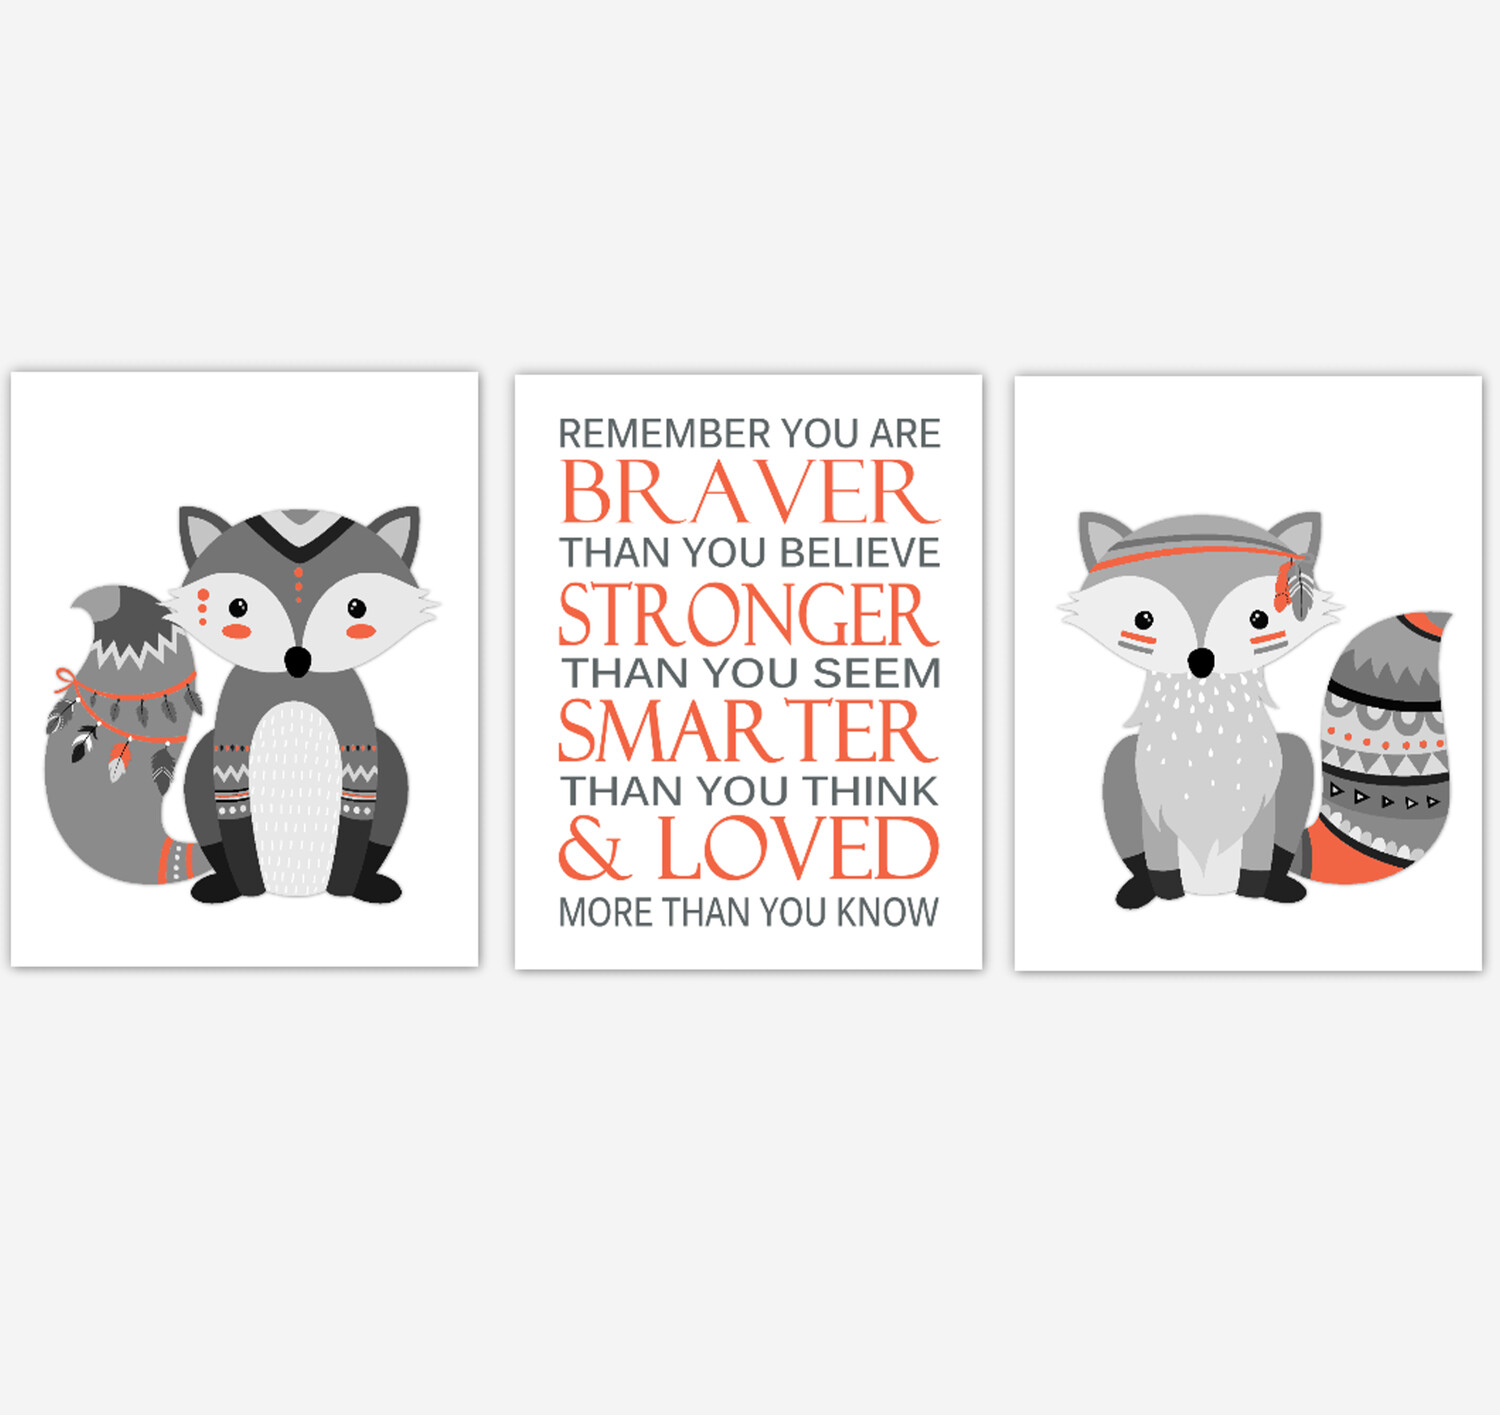 Tribal Fox Baby Boy Nursery Wall Art Orange Gray Aztec Woodland Animals Kids Bedroom Decor 3 UNFRAMED PRINTS or CANVAS